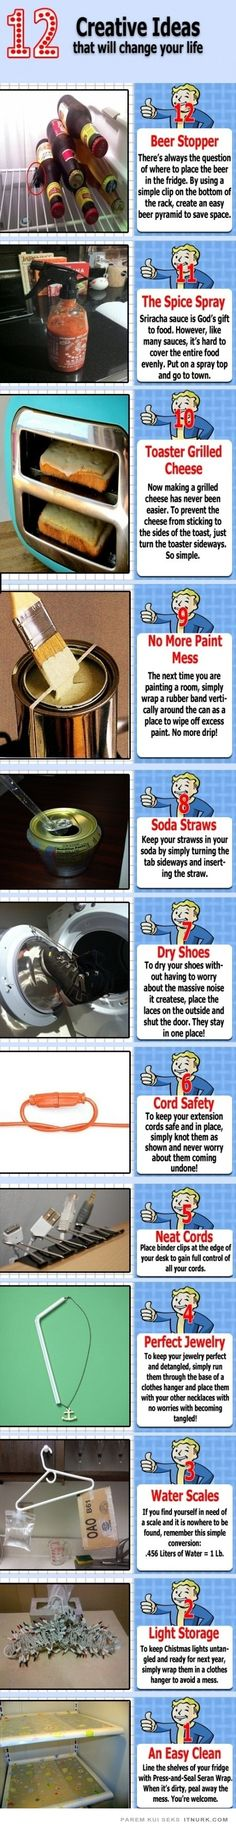 Simple but brilliant ideas that make me feel stupid that I didn't think of them.